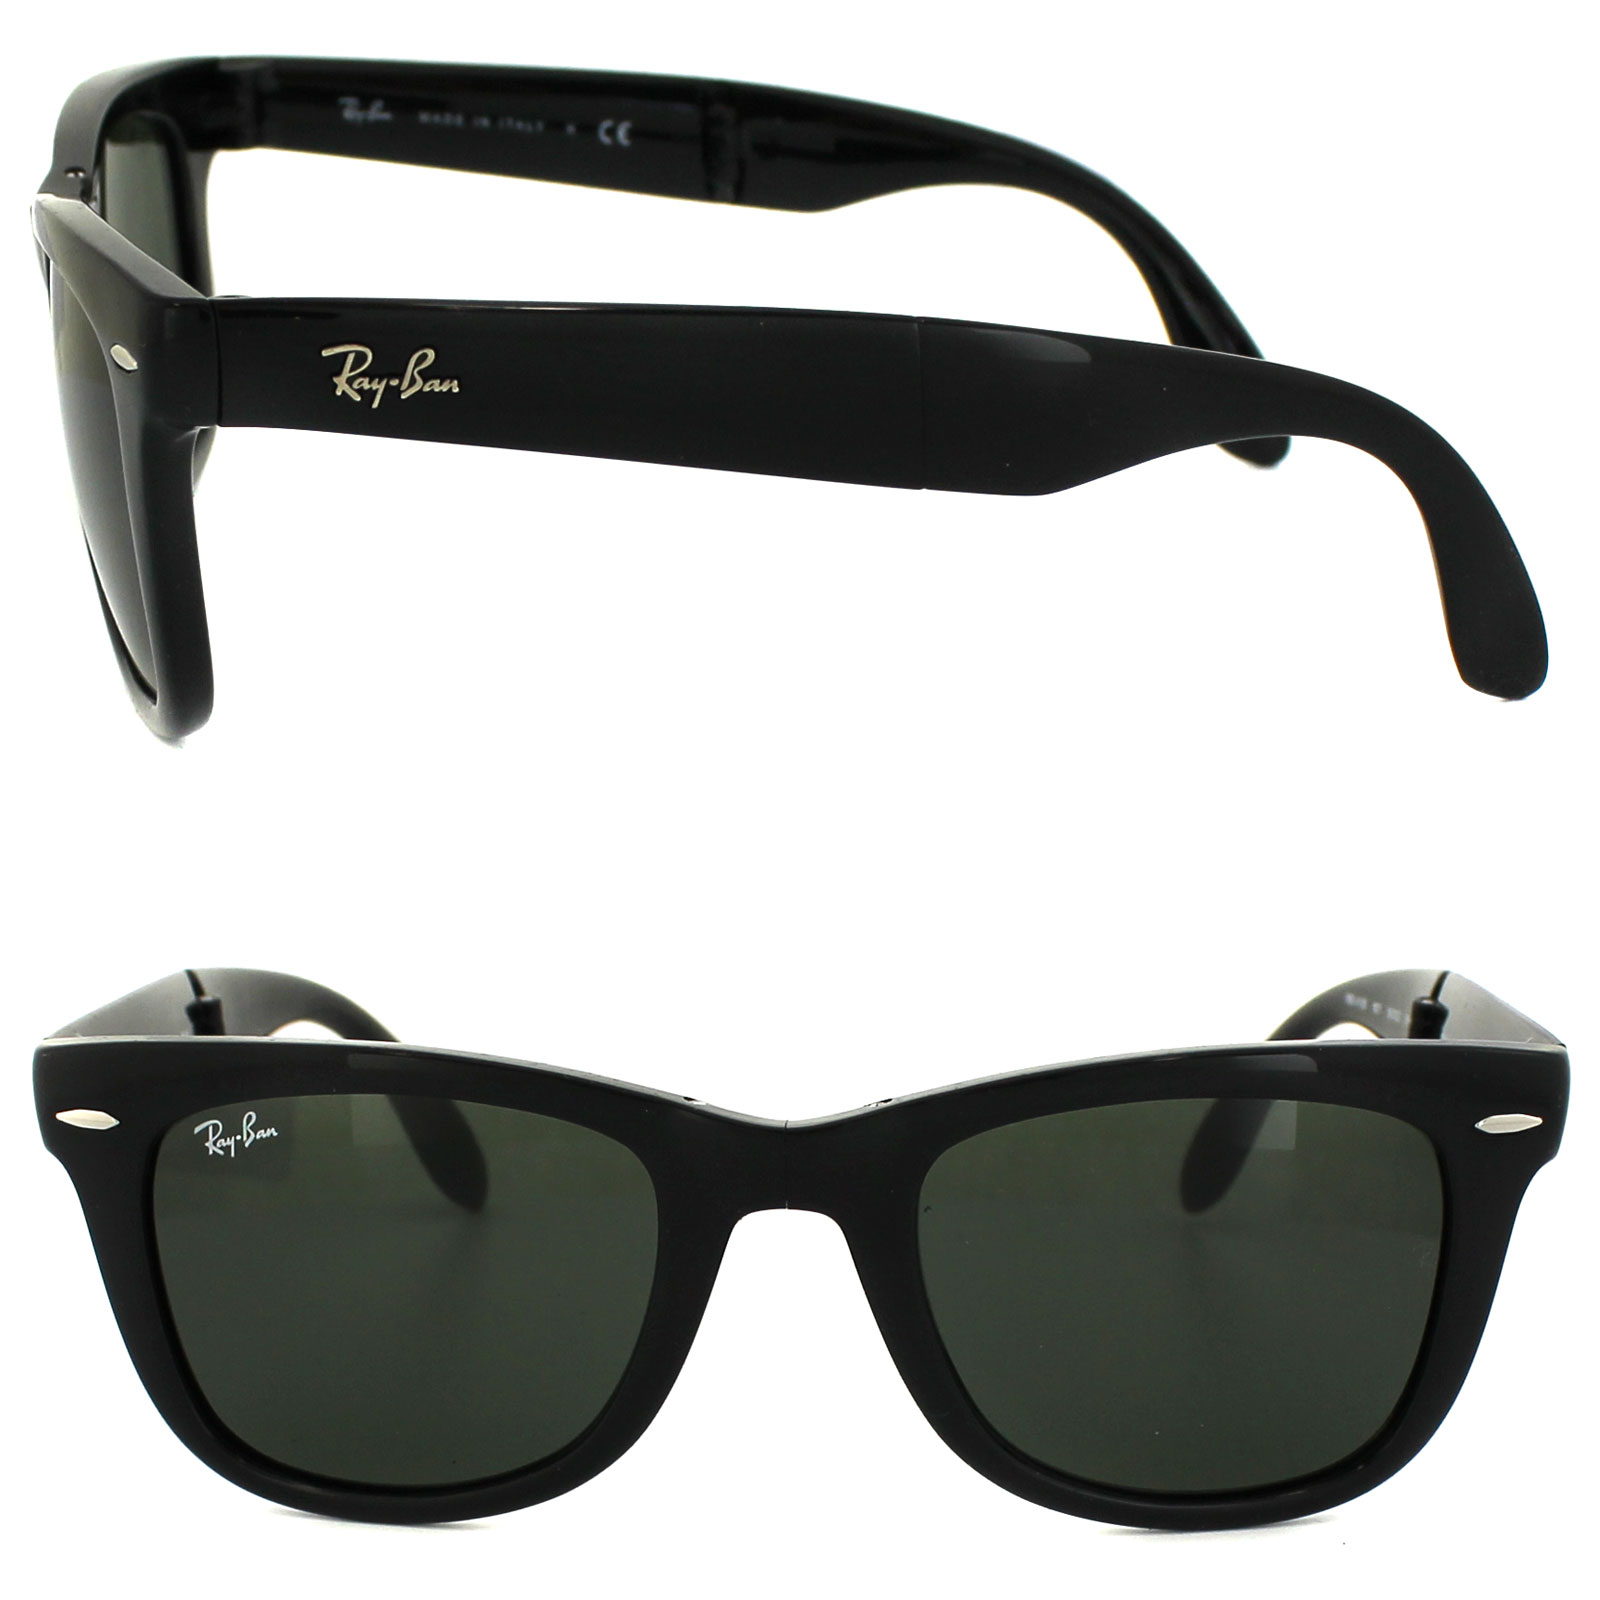 50e13d43121 Sentinel Ray-Ban Sunglasses Folding Wayfarer 4105 Black Green 601 Medium  50mm